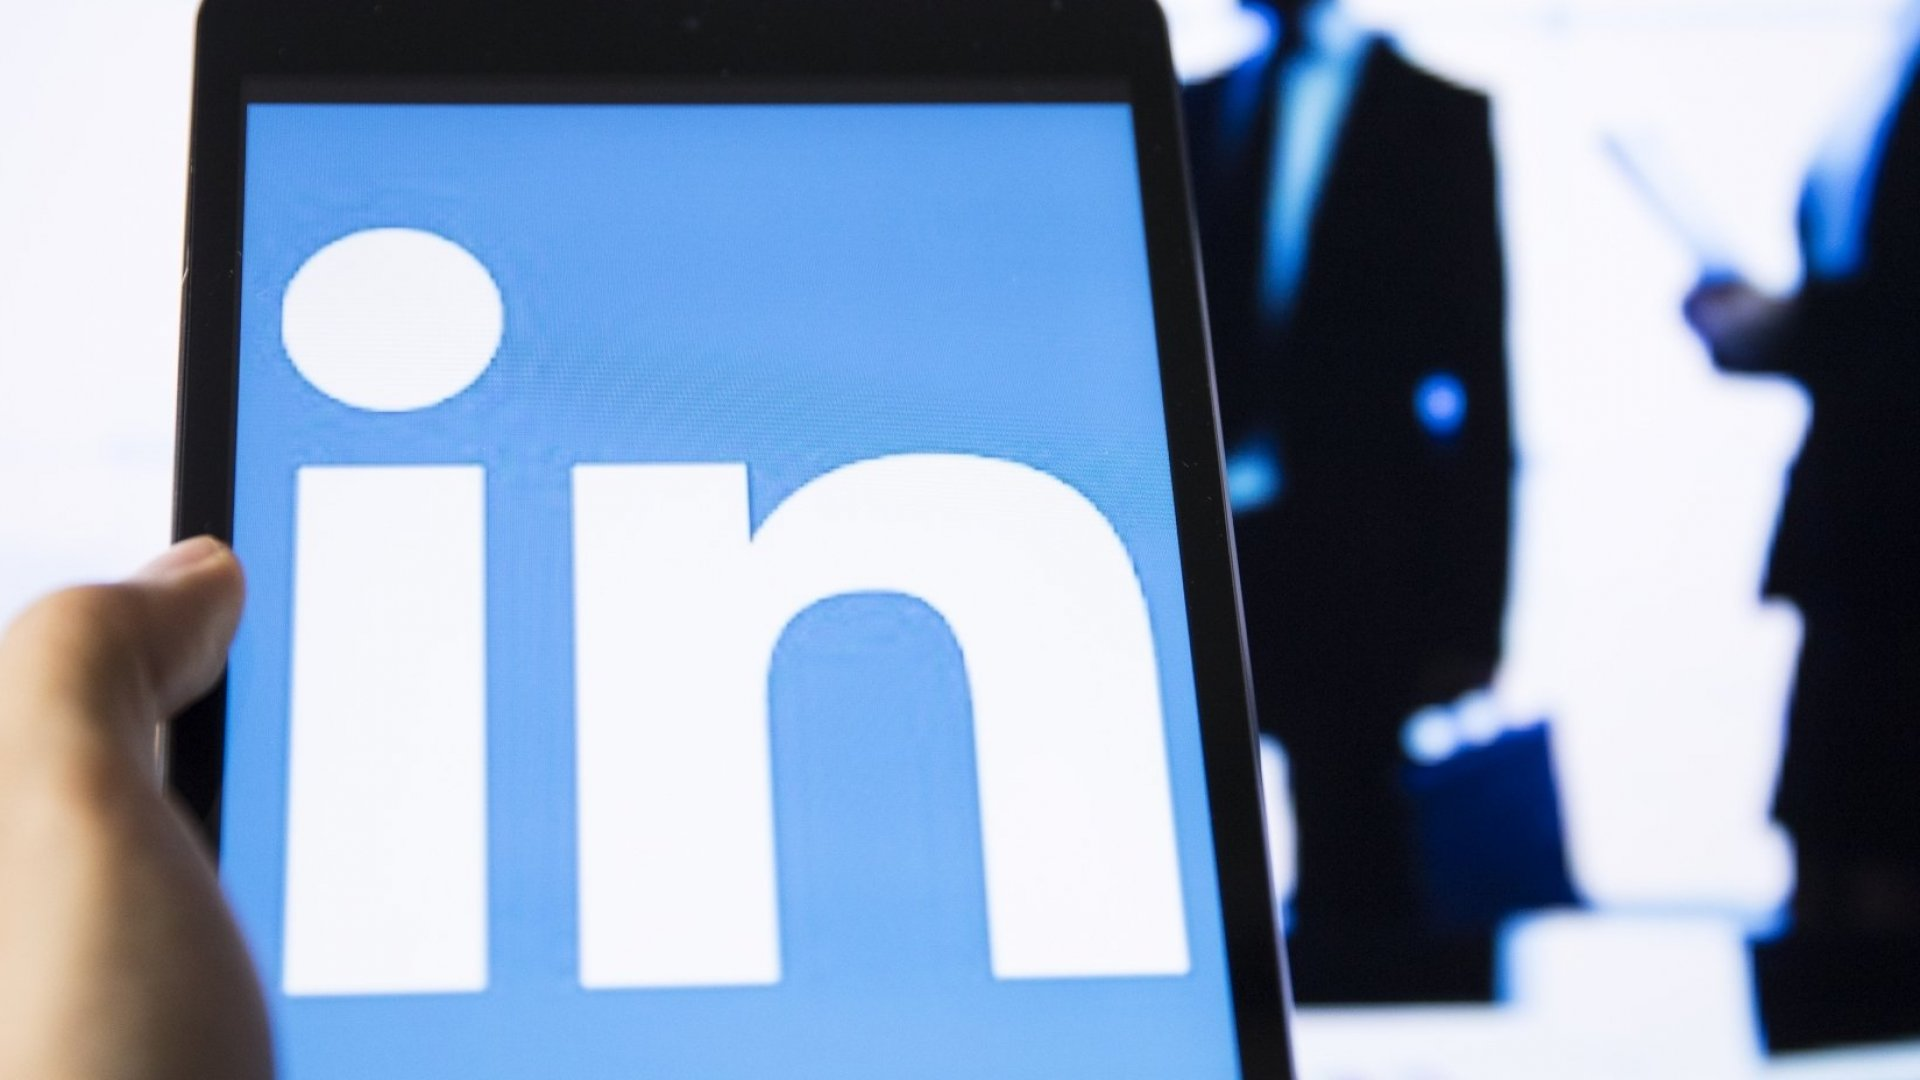 The 'Smart' New LinkedIn Feature You Need to Know About